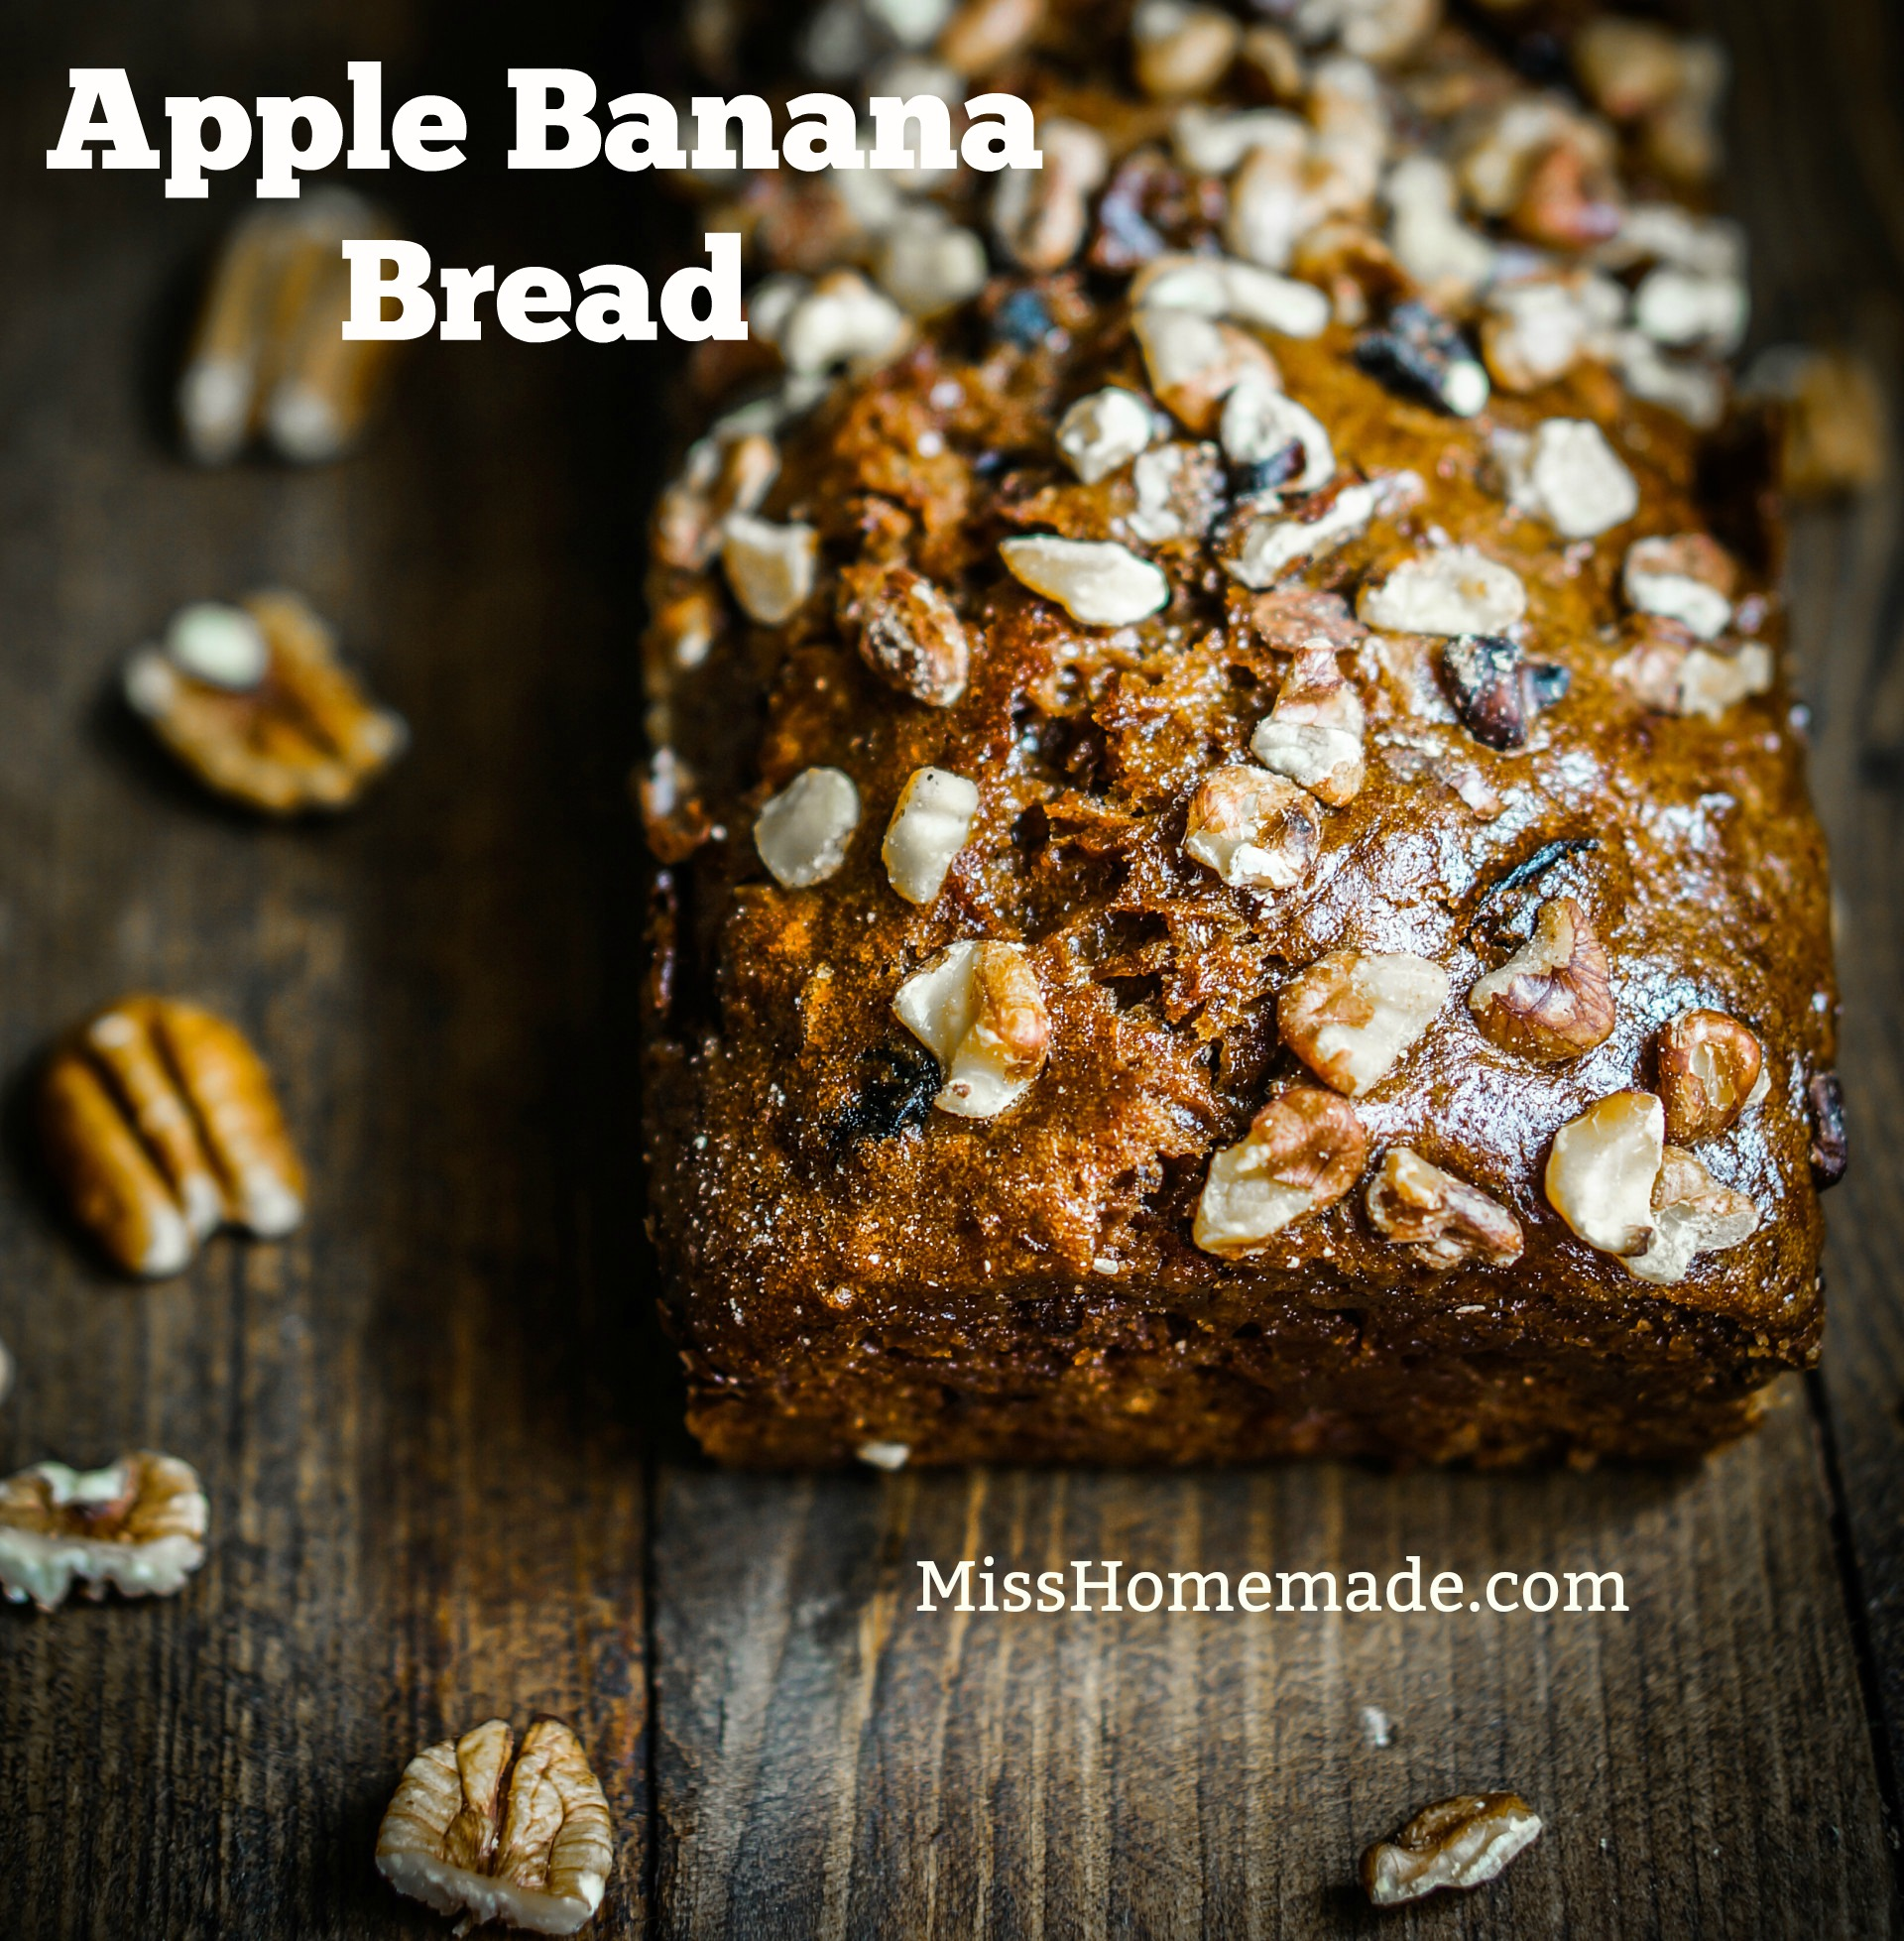 Apple Banana Bread Recipe